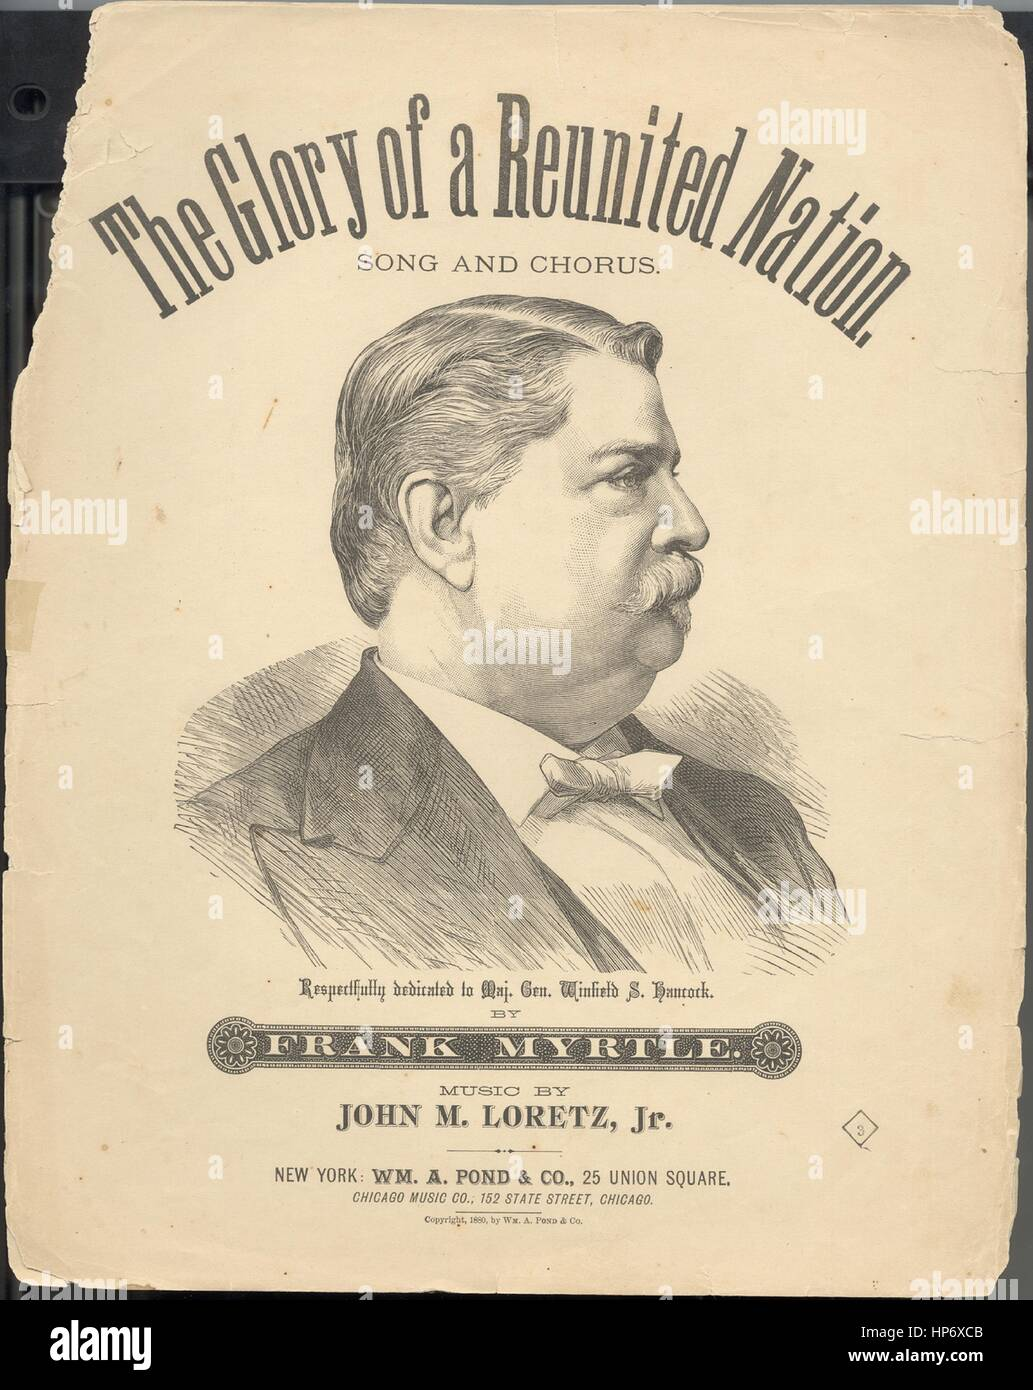 Sheet music cover image of the song 'The Glory of a Reunited Nation Song and Chorus', with original authorship - Stock Image